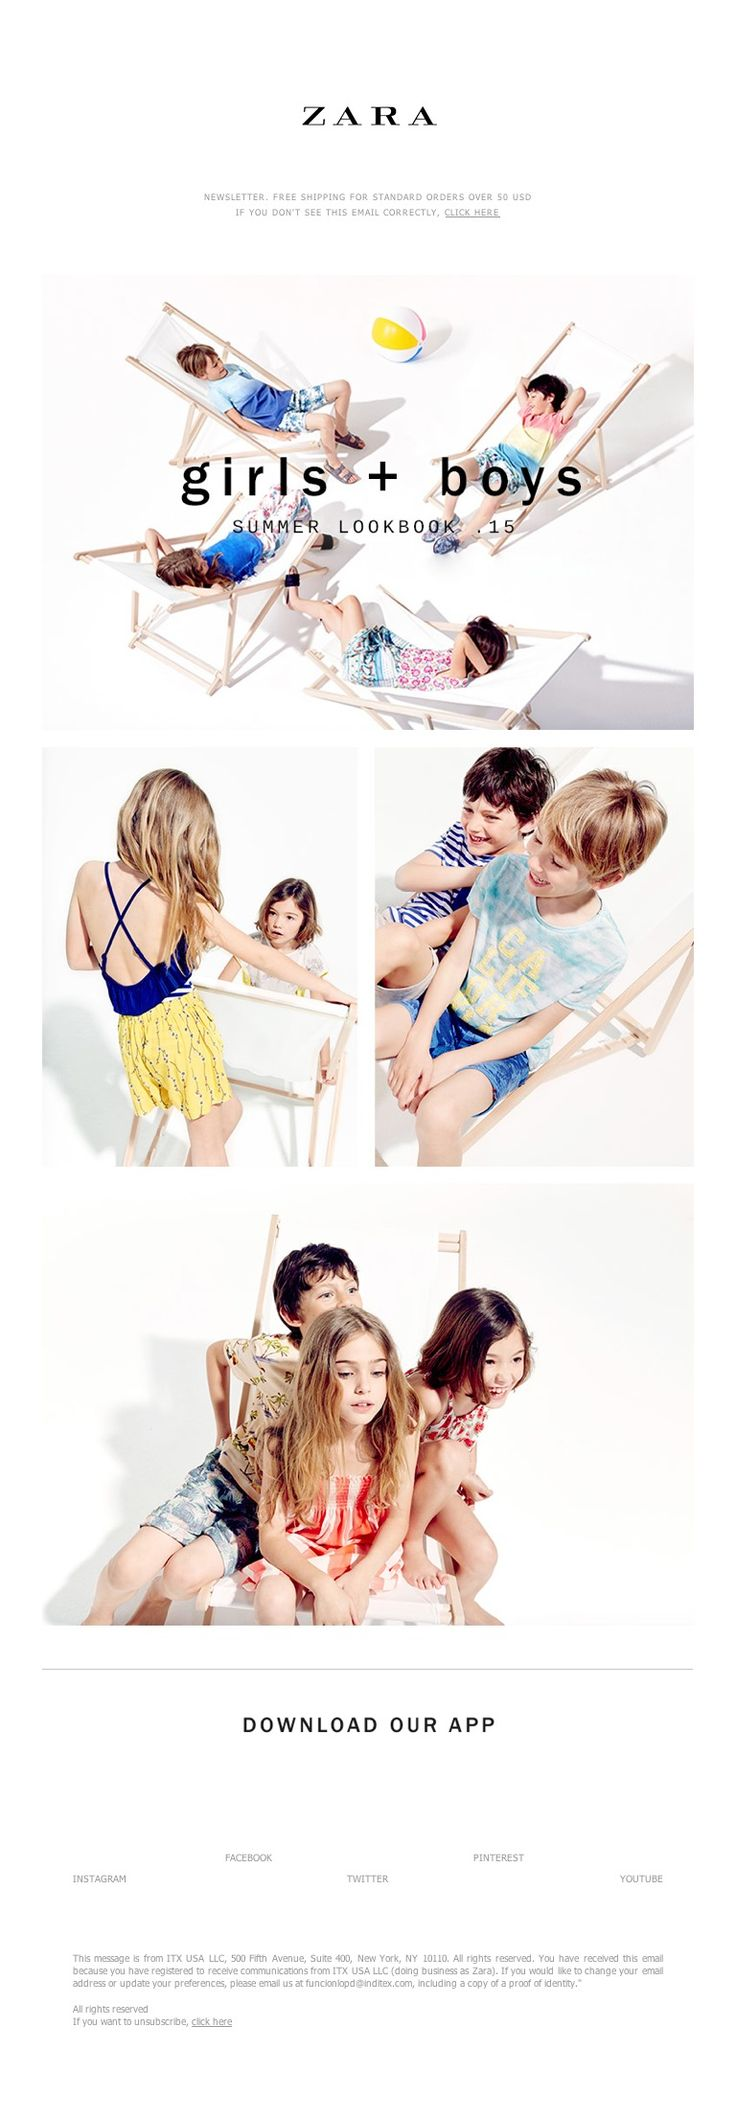 ZARA - Lookbook Kids: It's Summer! Boys + Girls